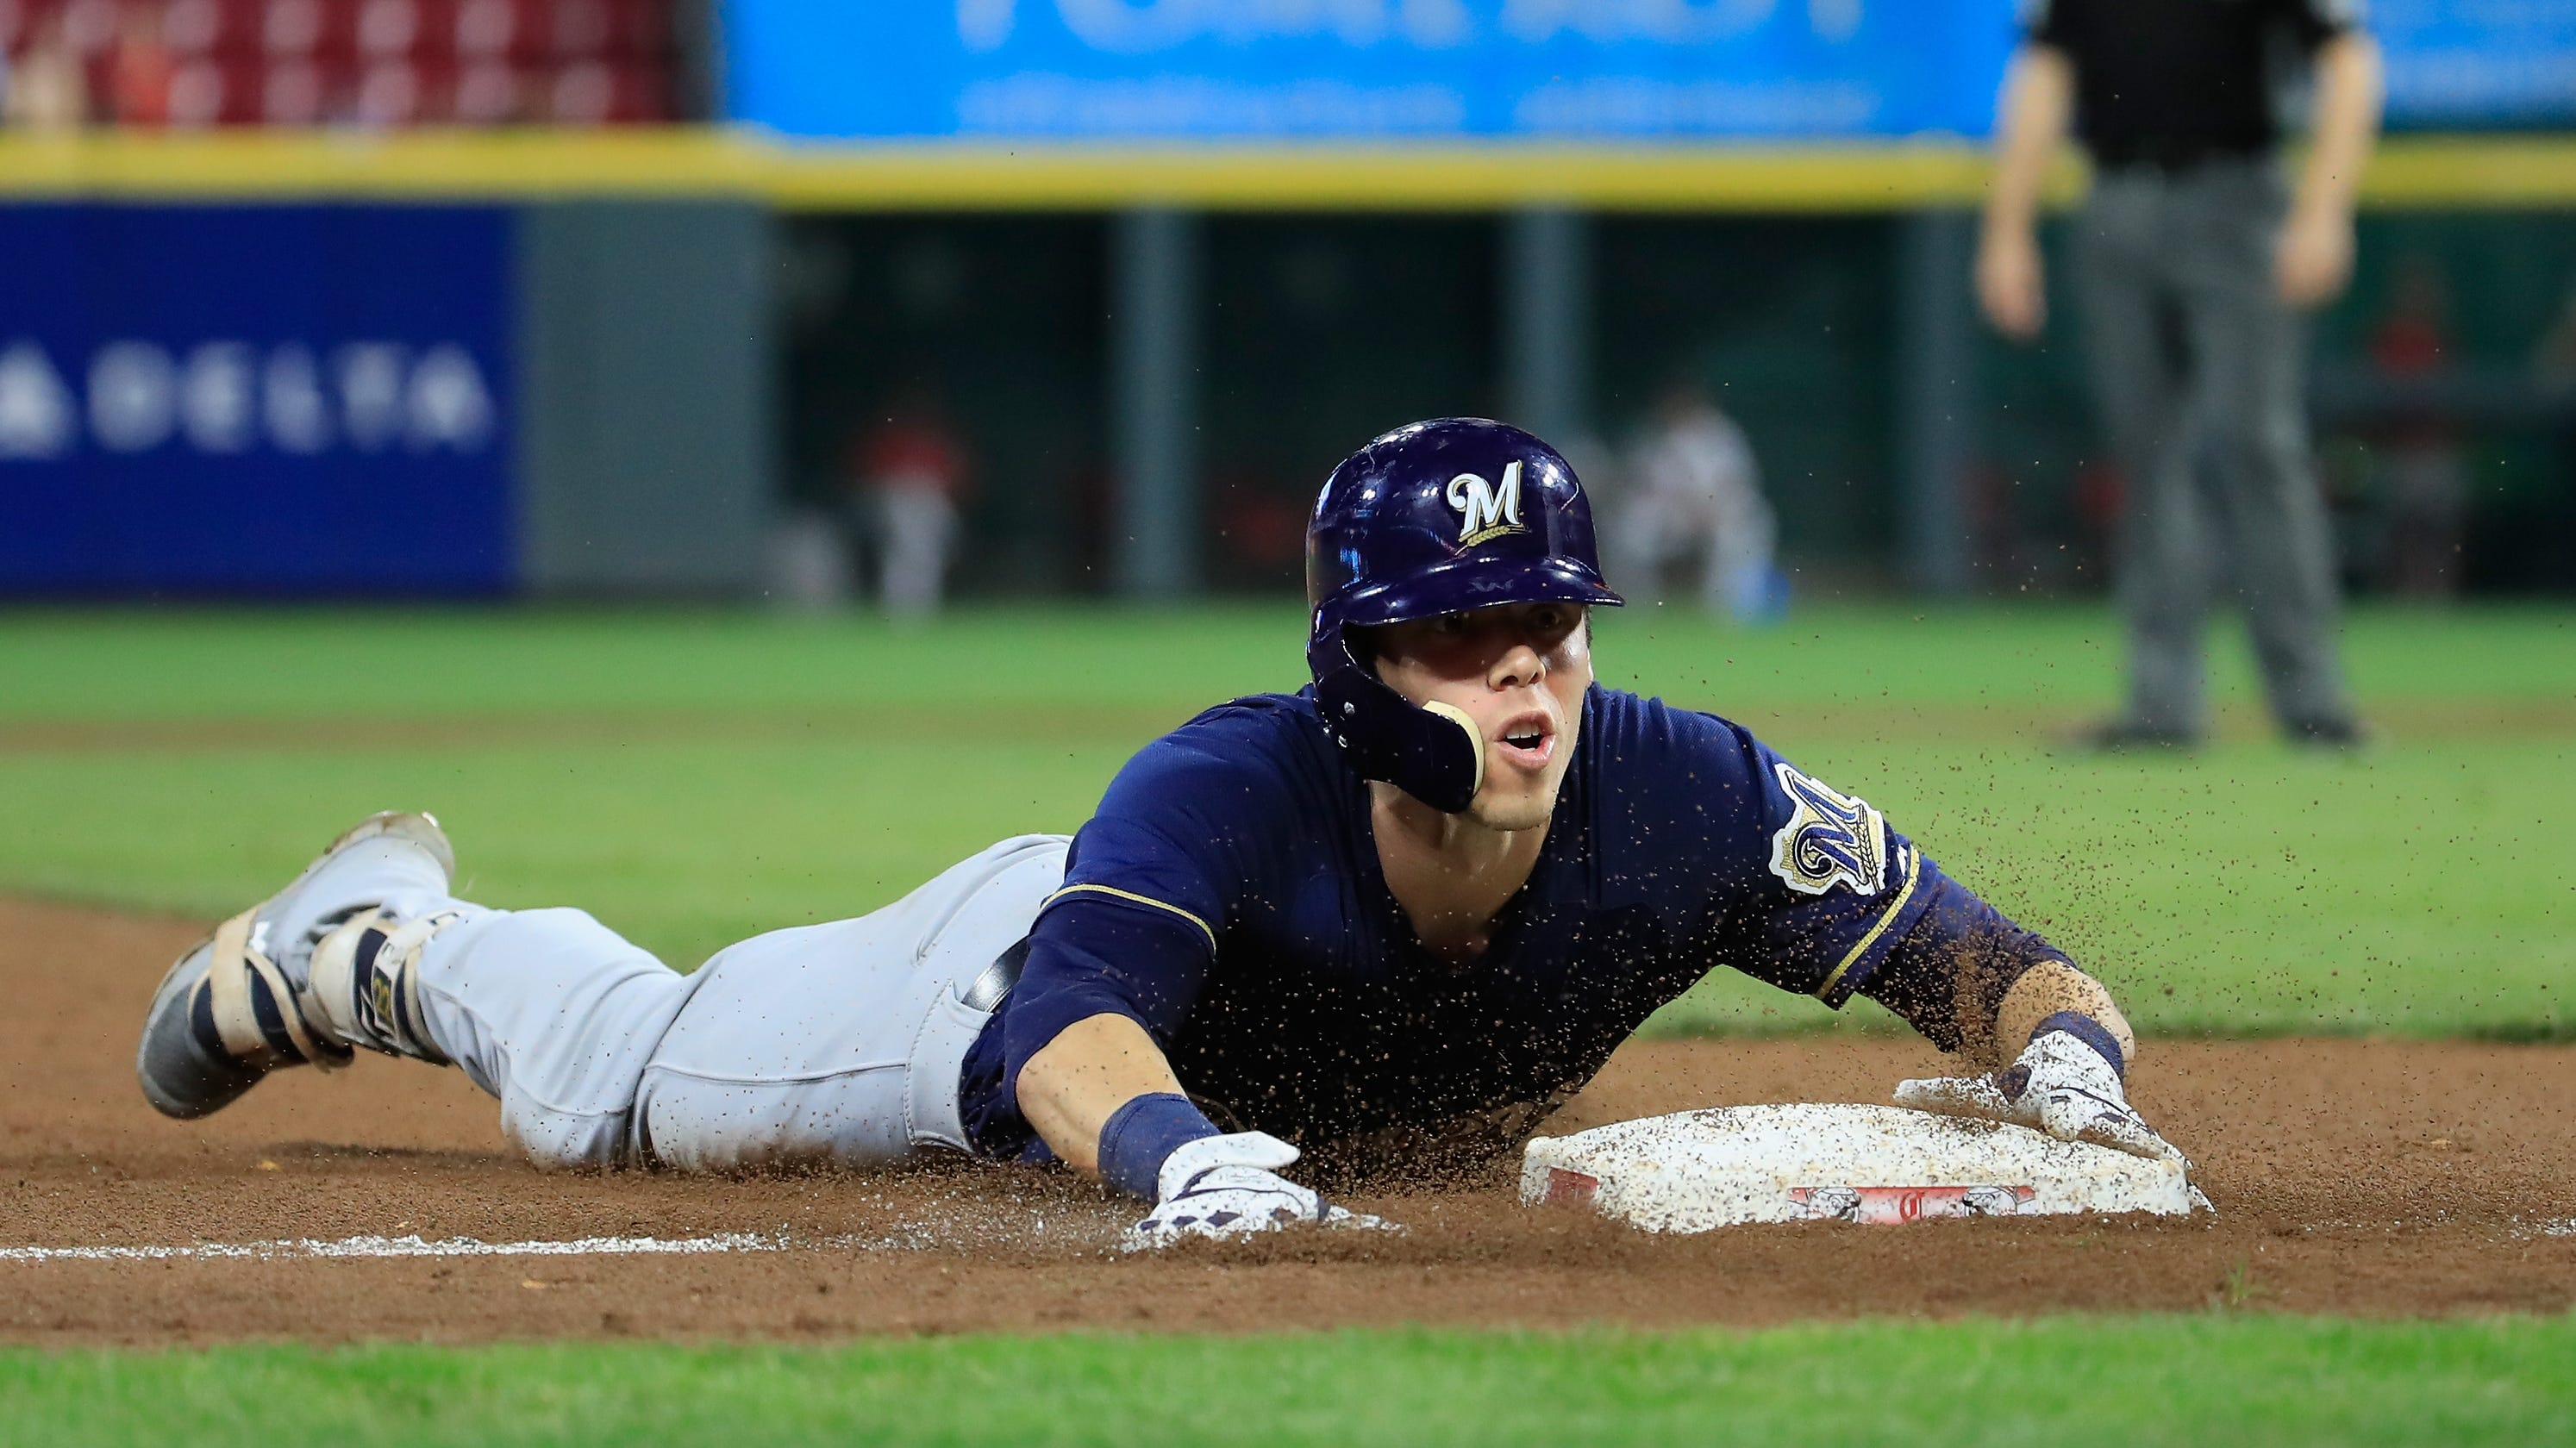 Just how serious are MVP chances of Brewers' Christian Yelich?